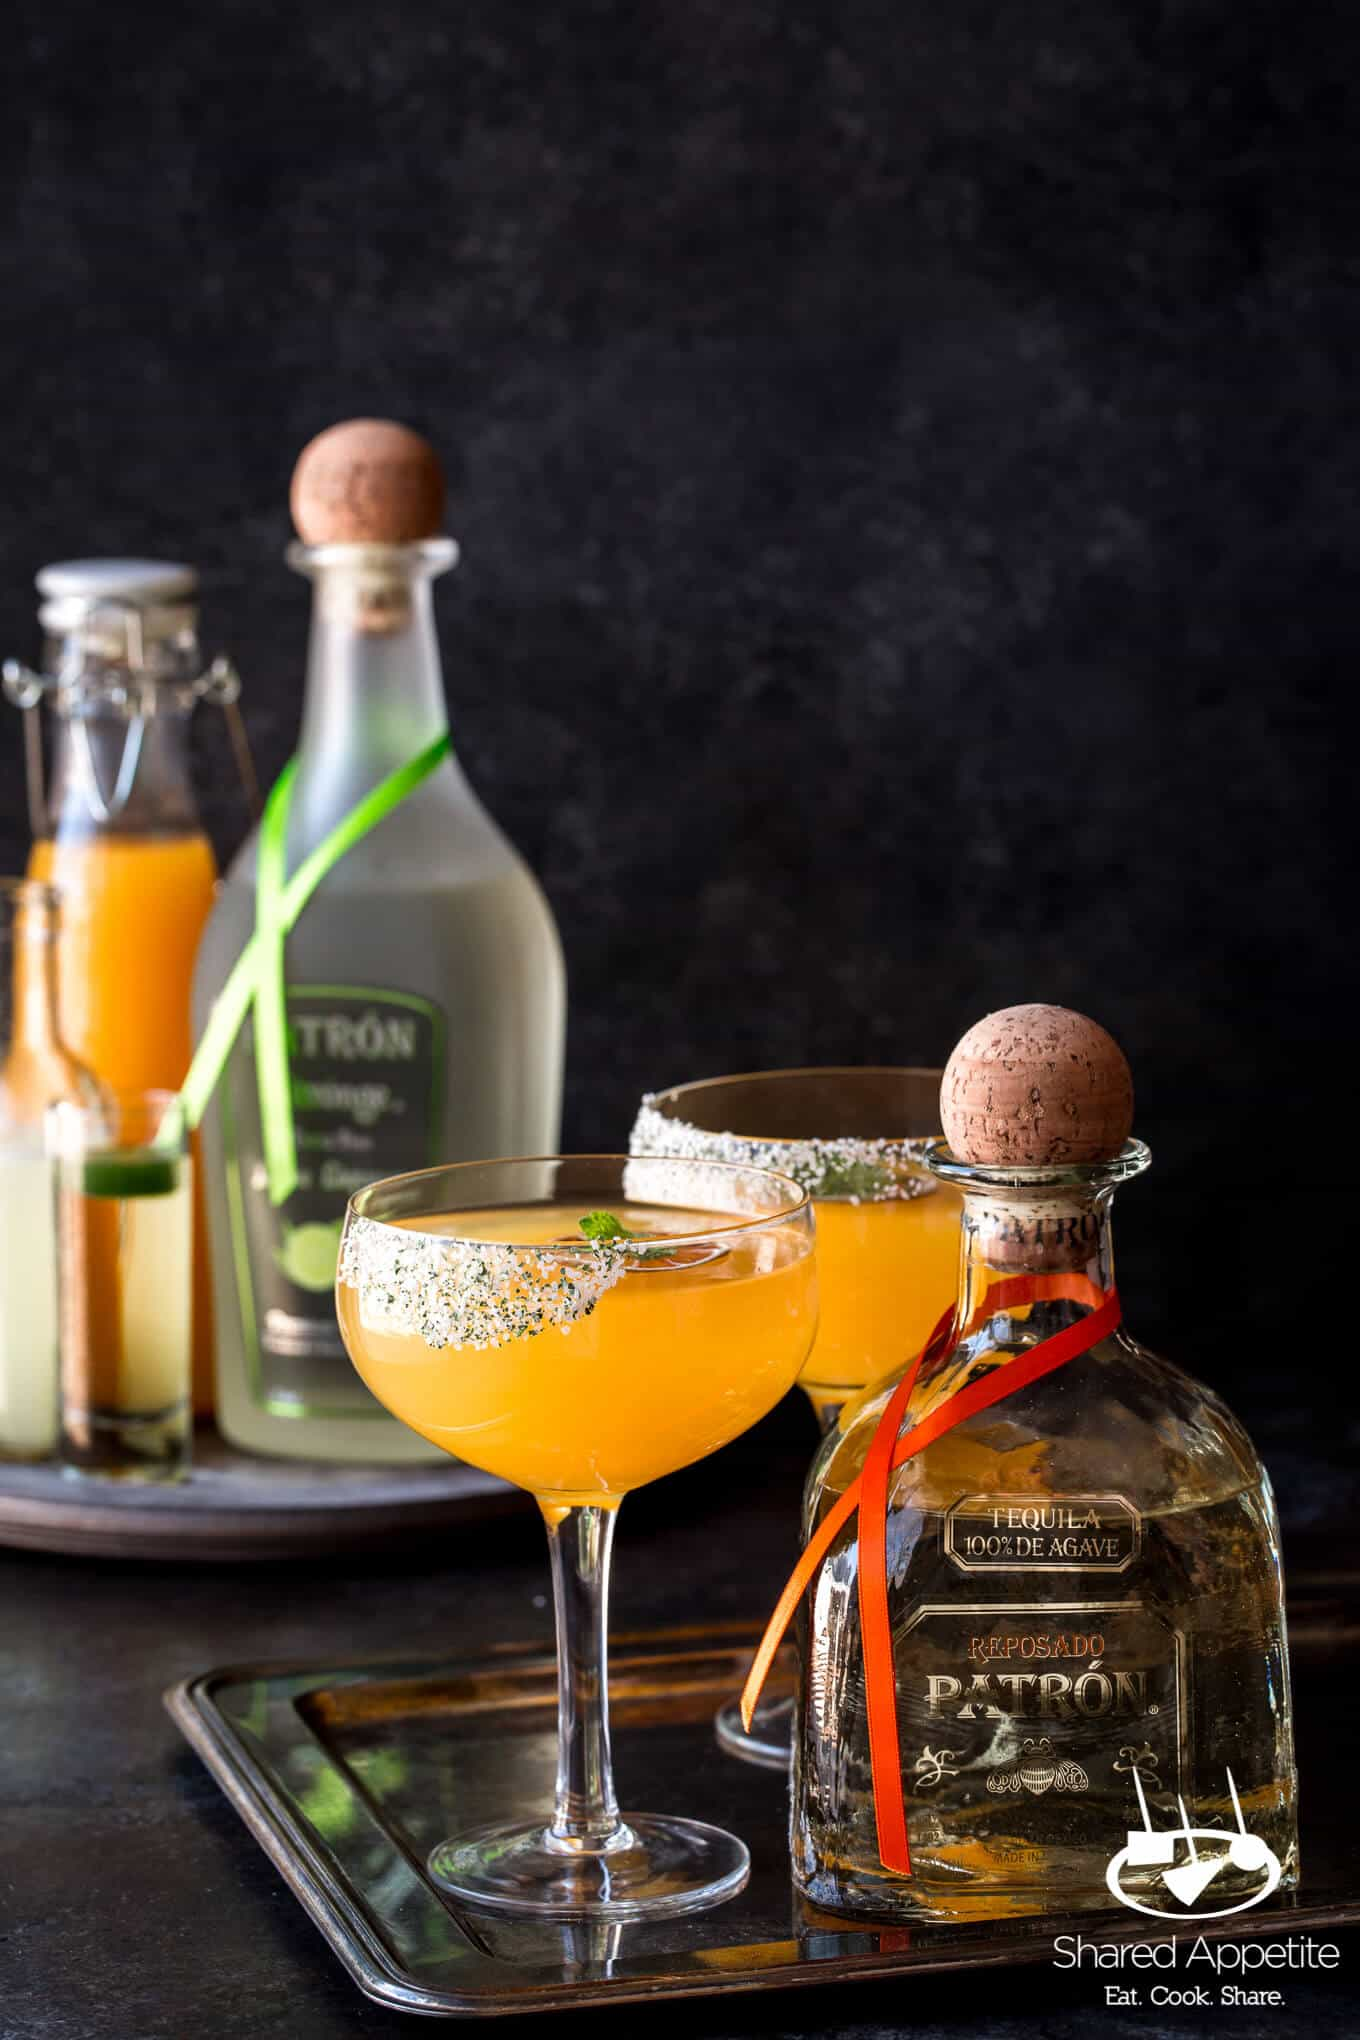 Mumbai Margarita inspired by the flavors of India with Patron tequila, mango puree, spicy rose water syrup, and lots of lime! sharedappetite.com